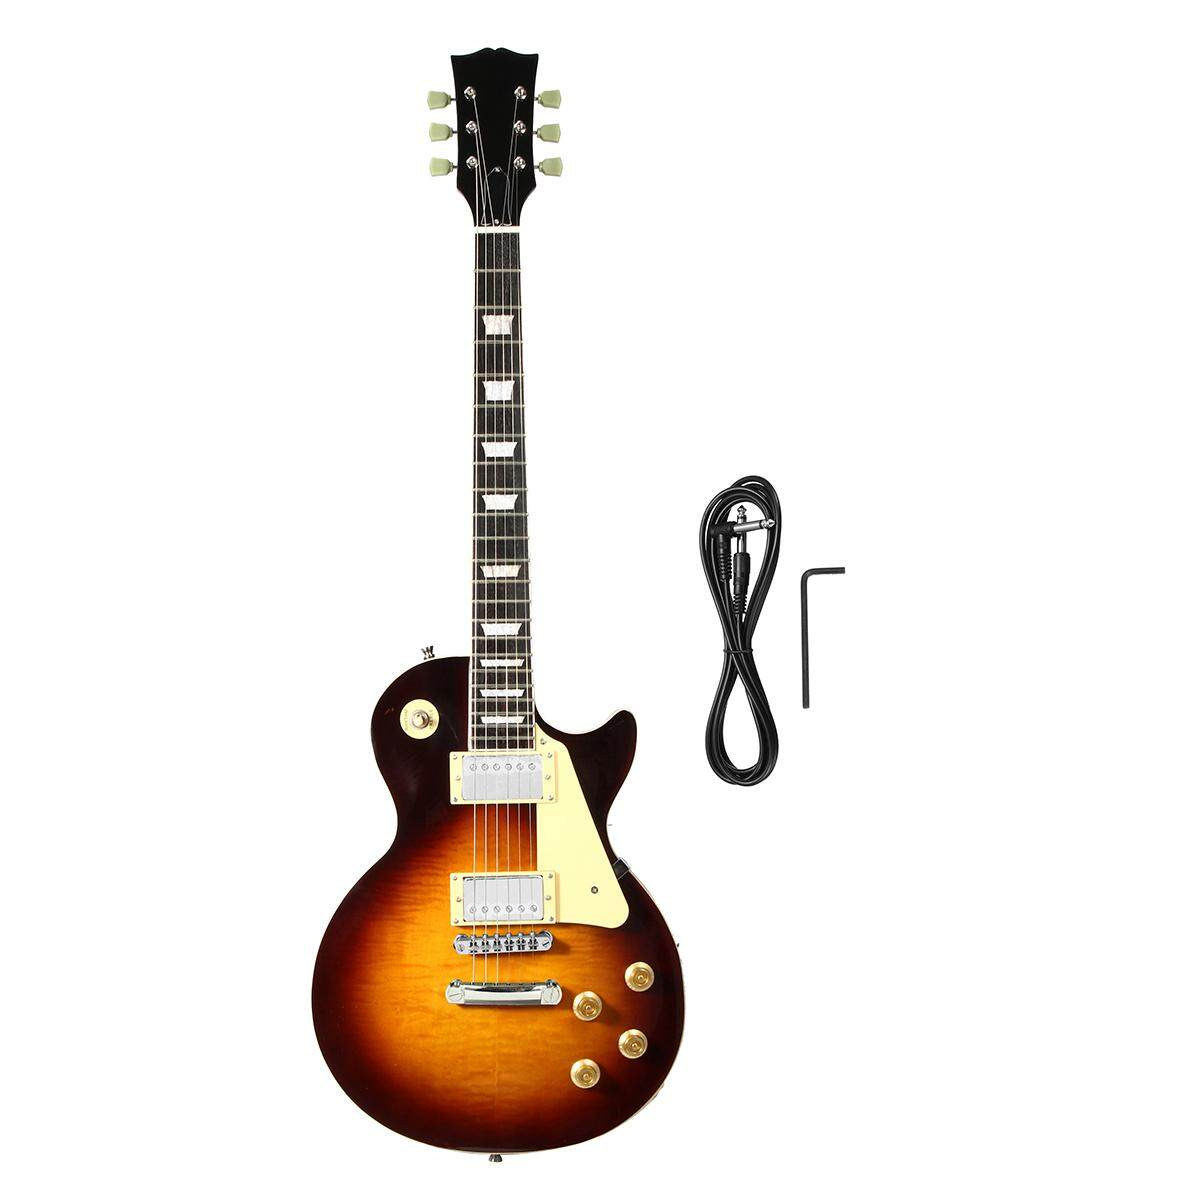 Hot Sell Lp Standard Electric Guitar Cherry Burst Color Figured Maple Top - Intl By Audew.